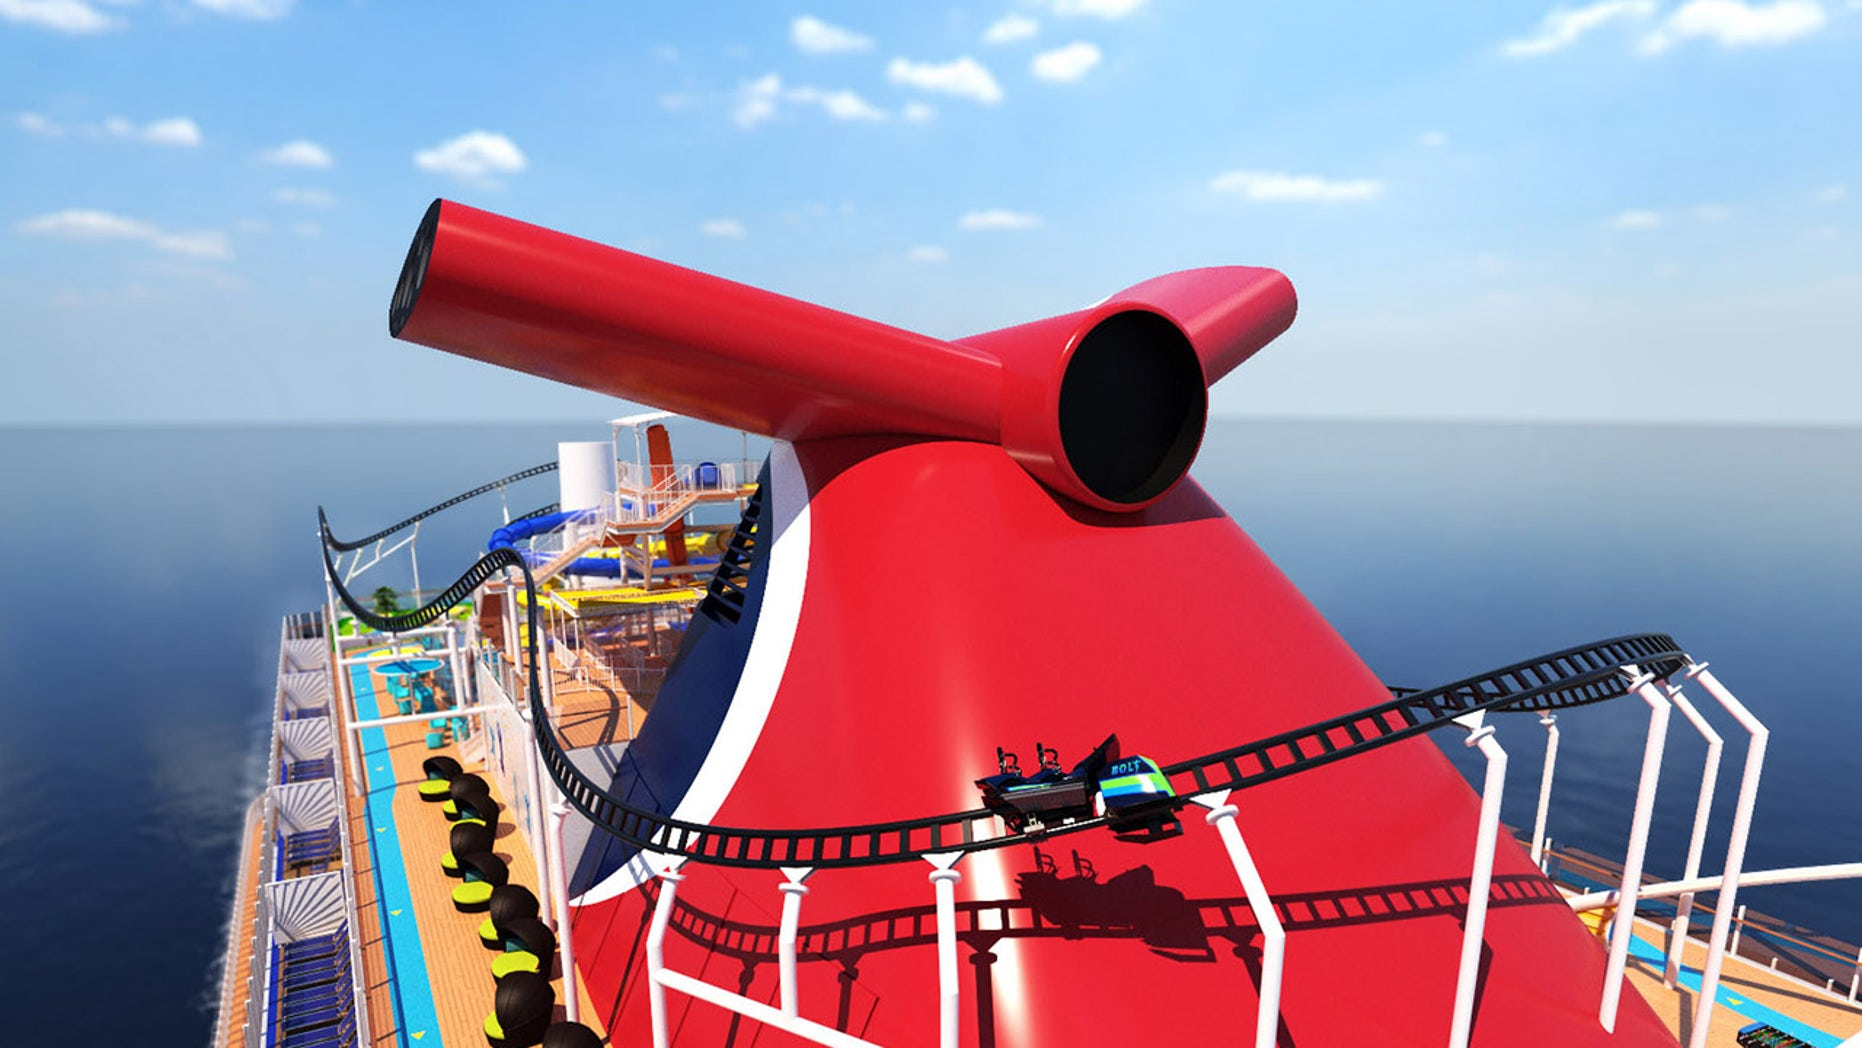 ROLLER COASTER AT SEA: Carnival announces roller coaster on new cruise ship